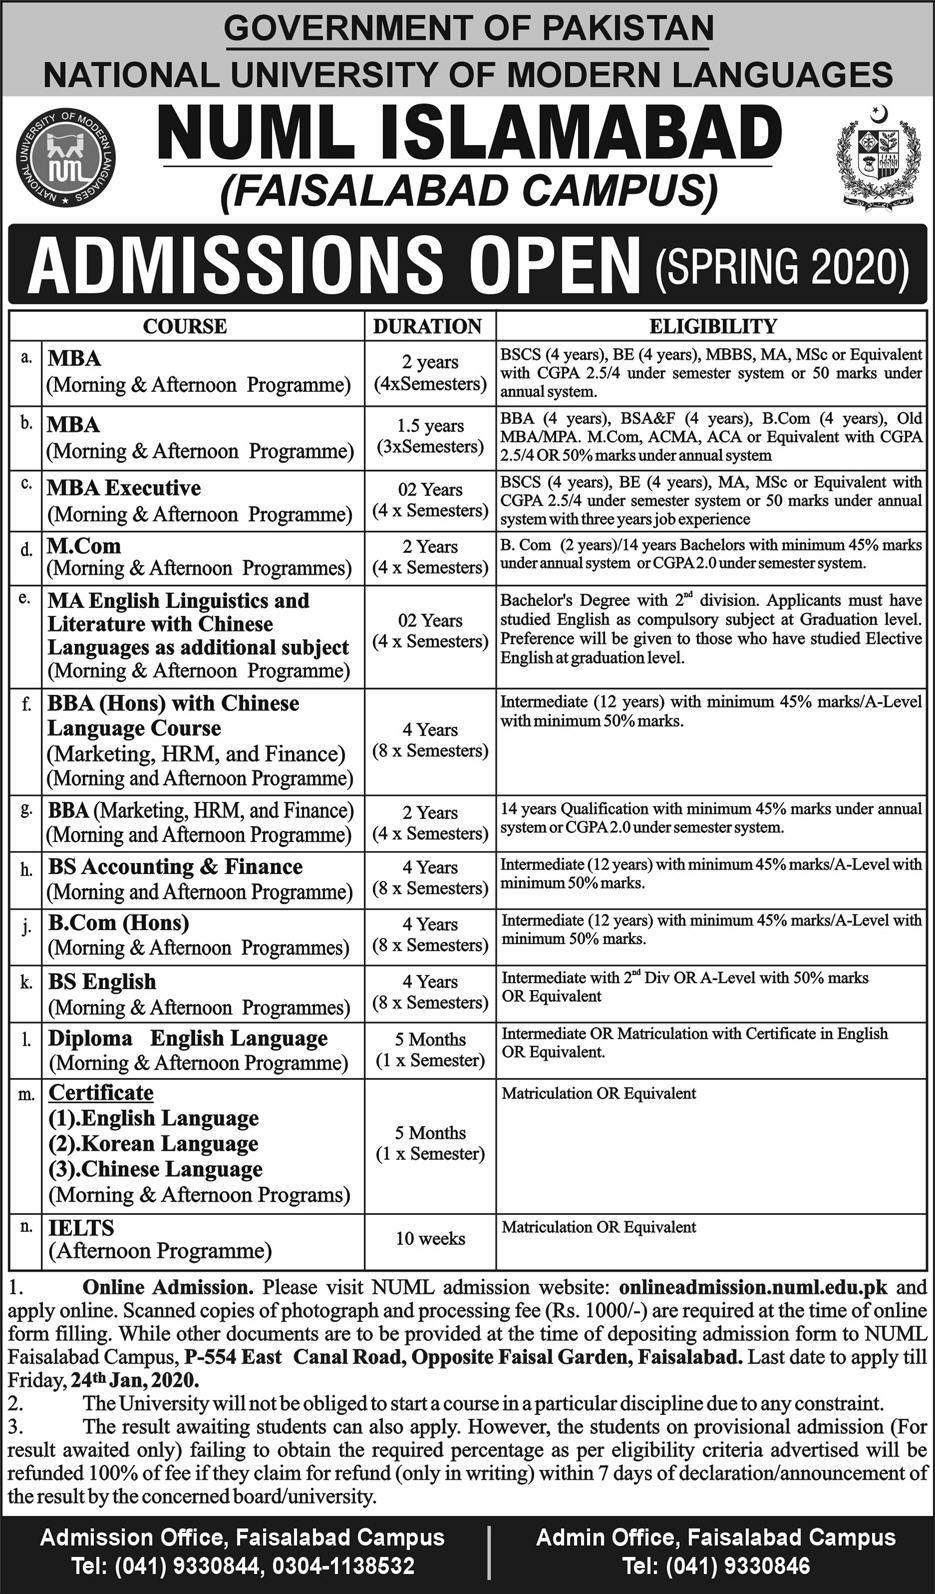 National University Of Modern Languages Islamabad Admissions